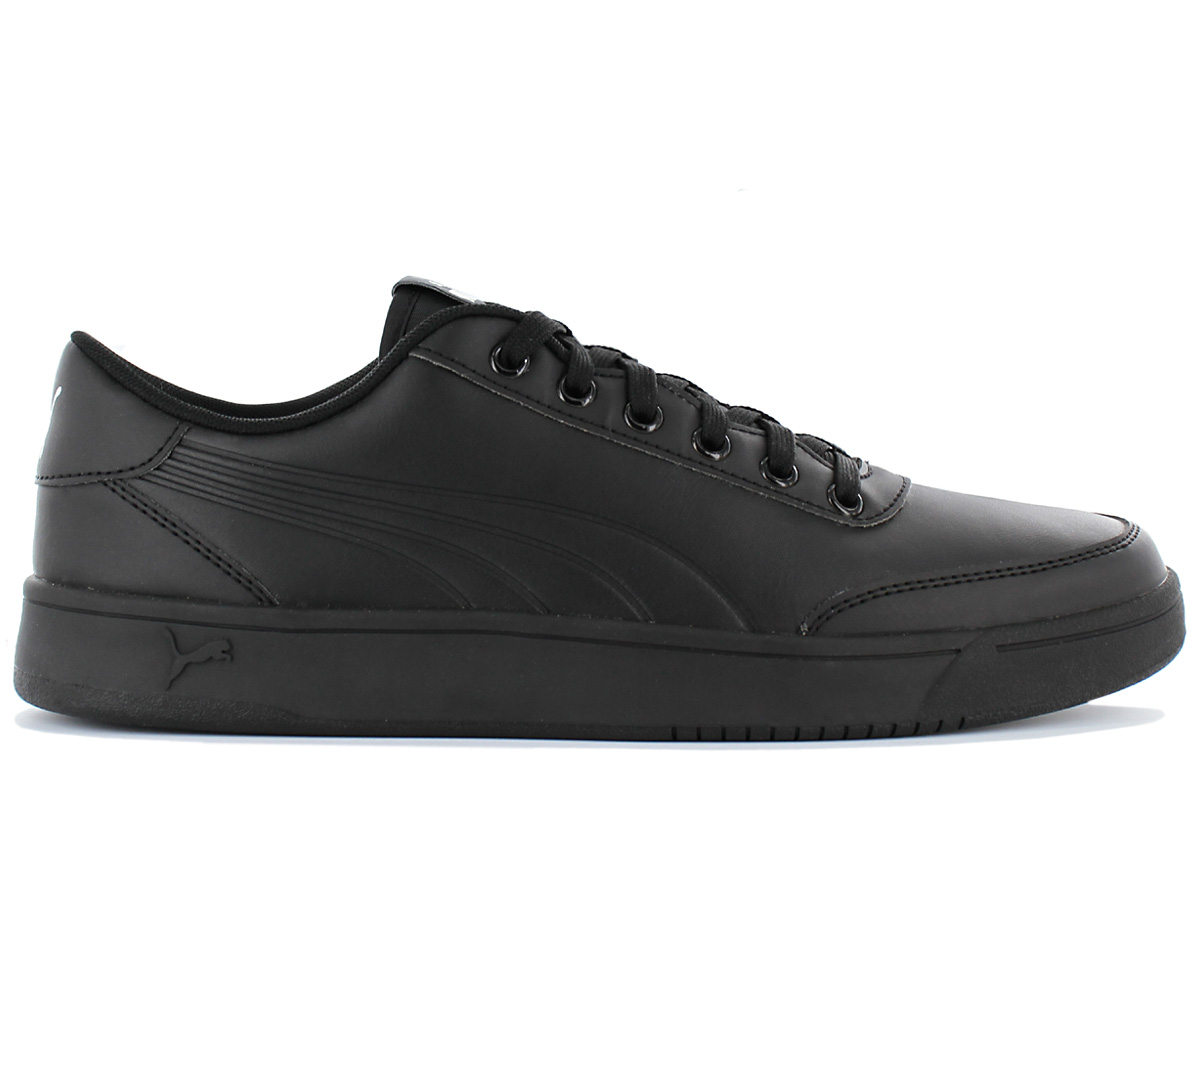 Details about Puma Court Breaker L Mono Men's Sneaker Shoes Leather Black Trainers 364976 01